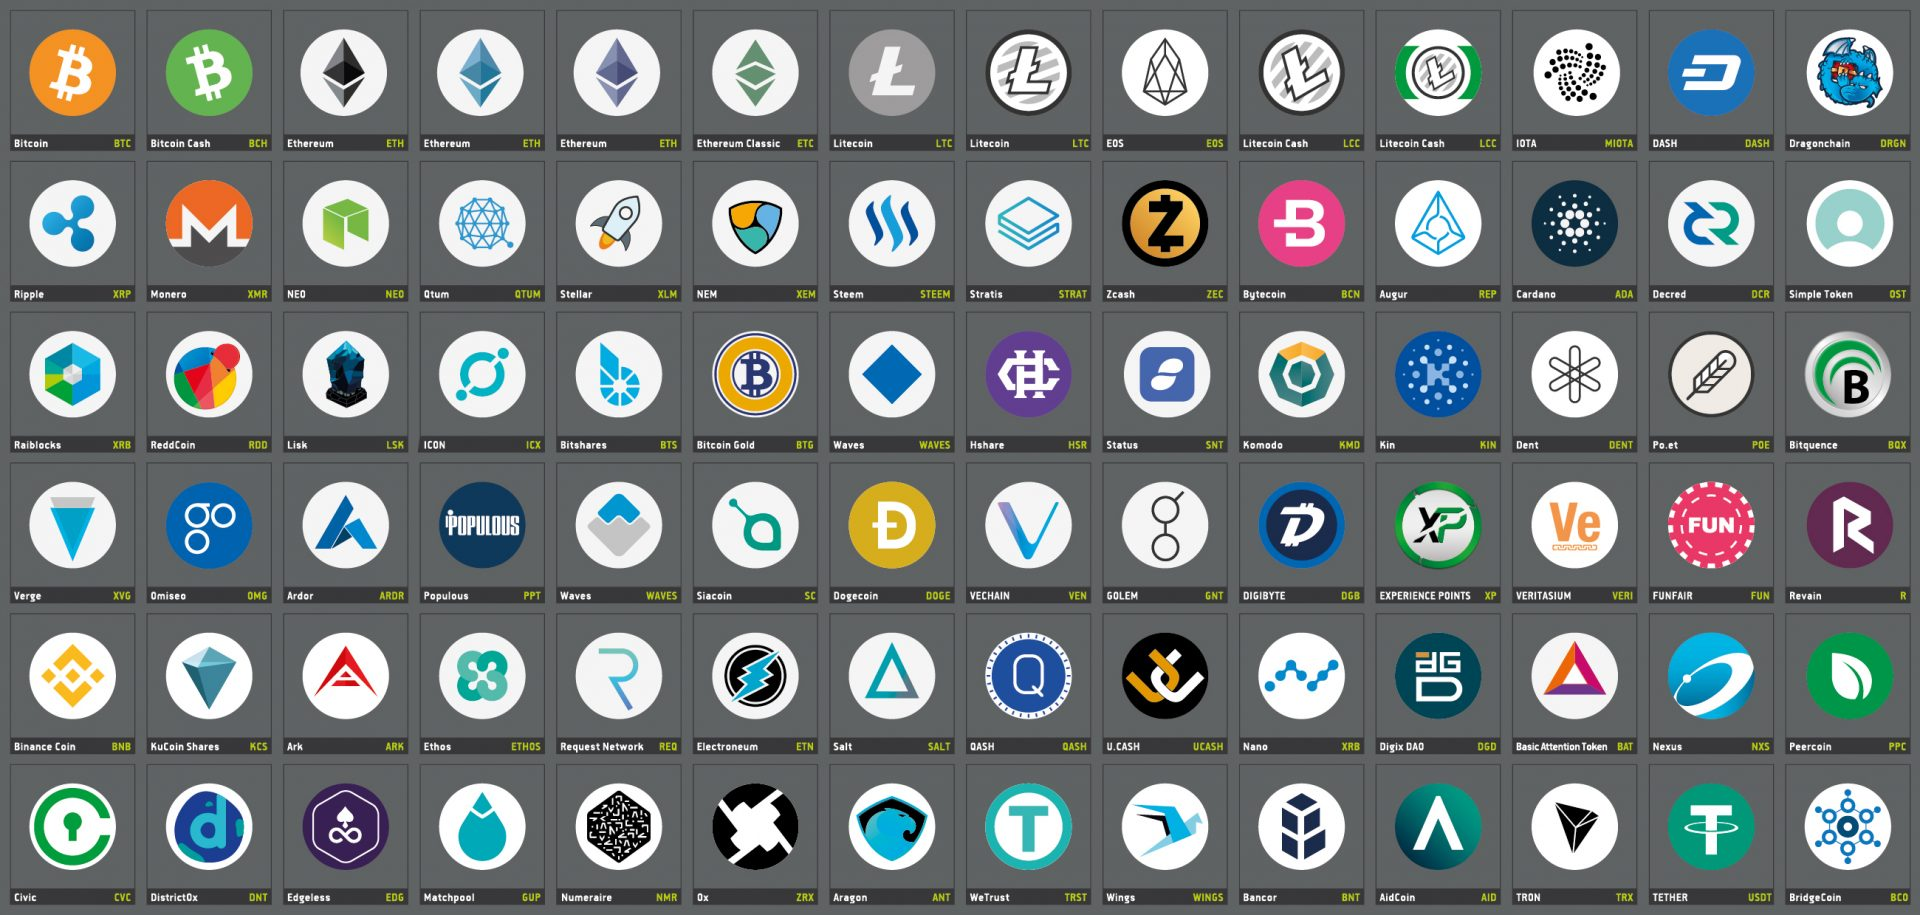 various cryptocurrency symbols